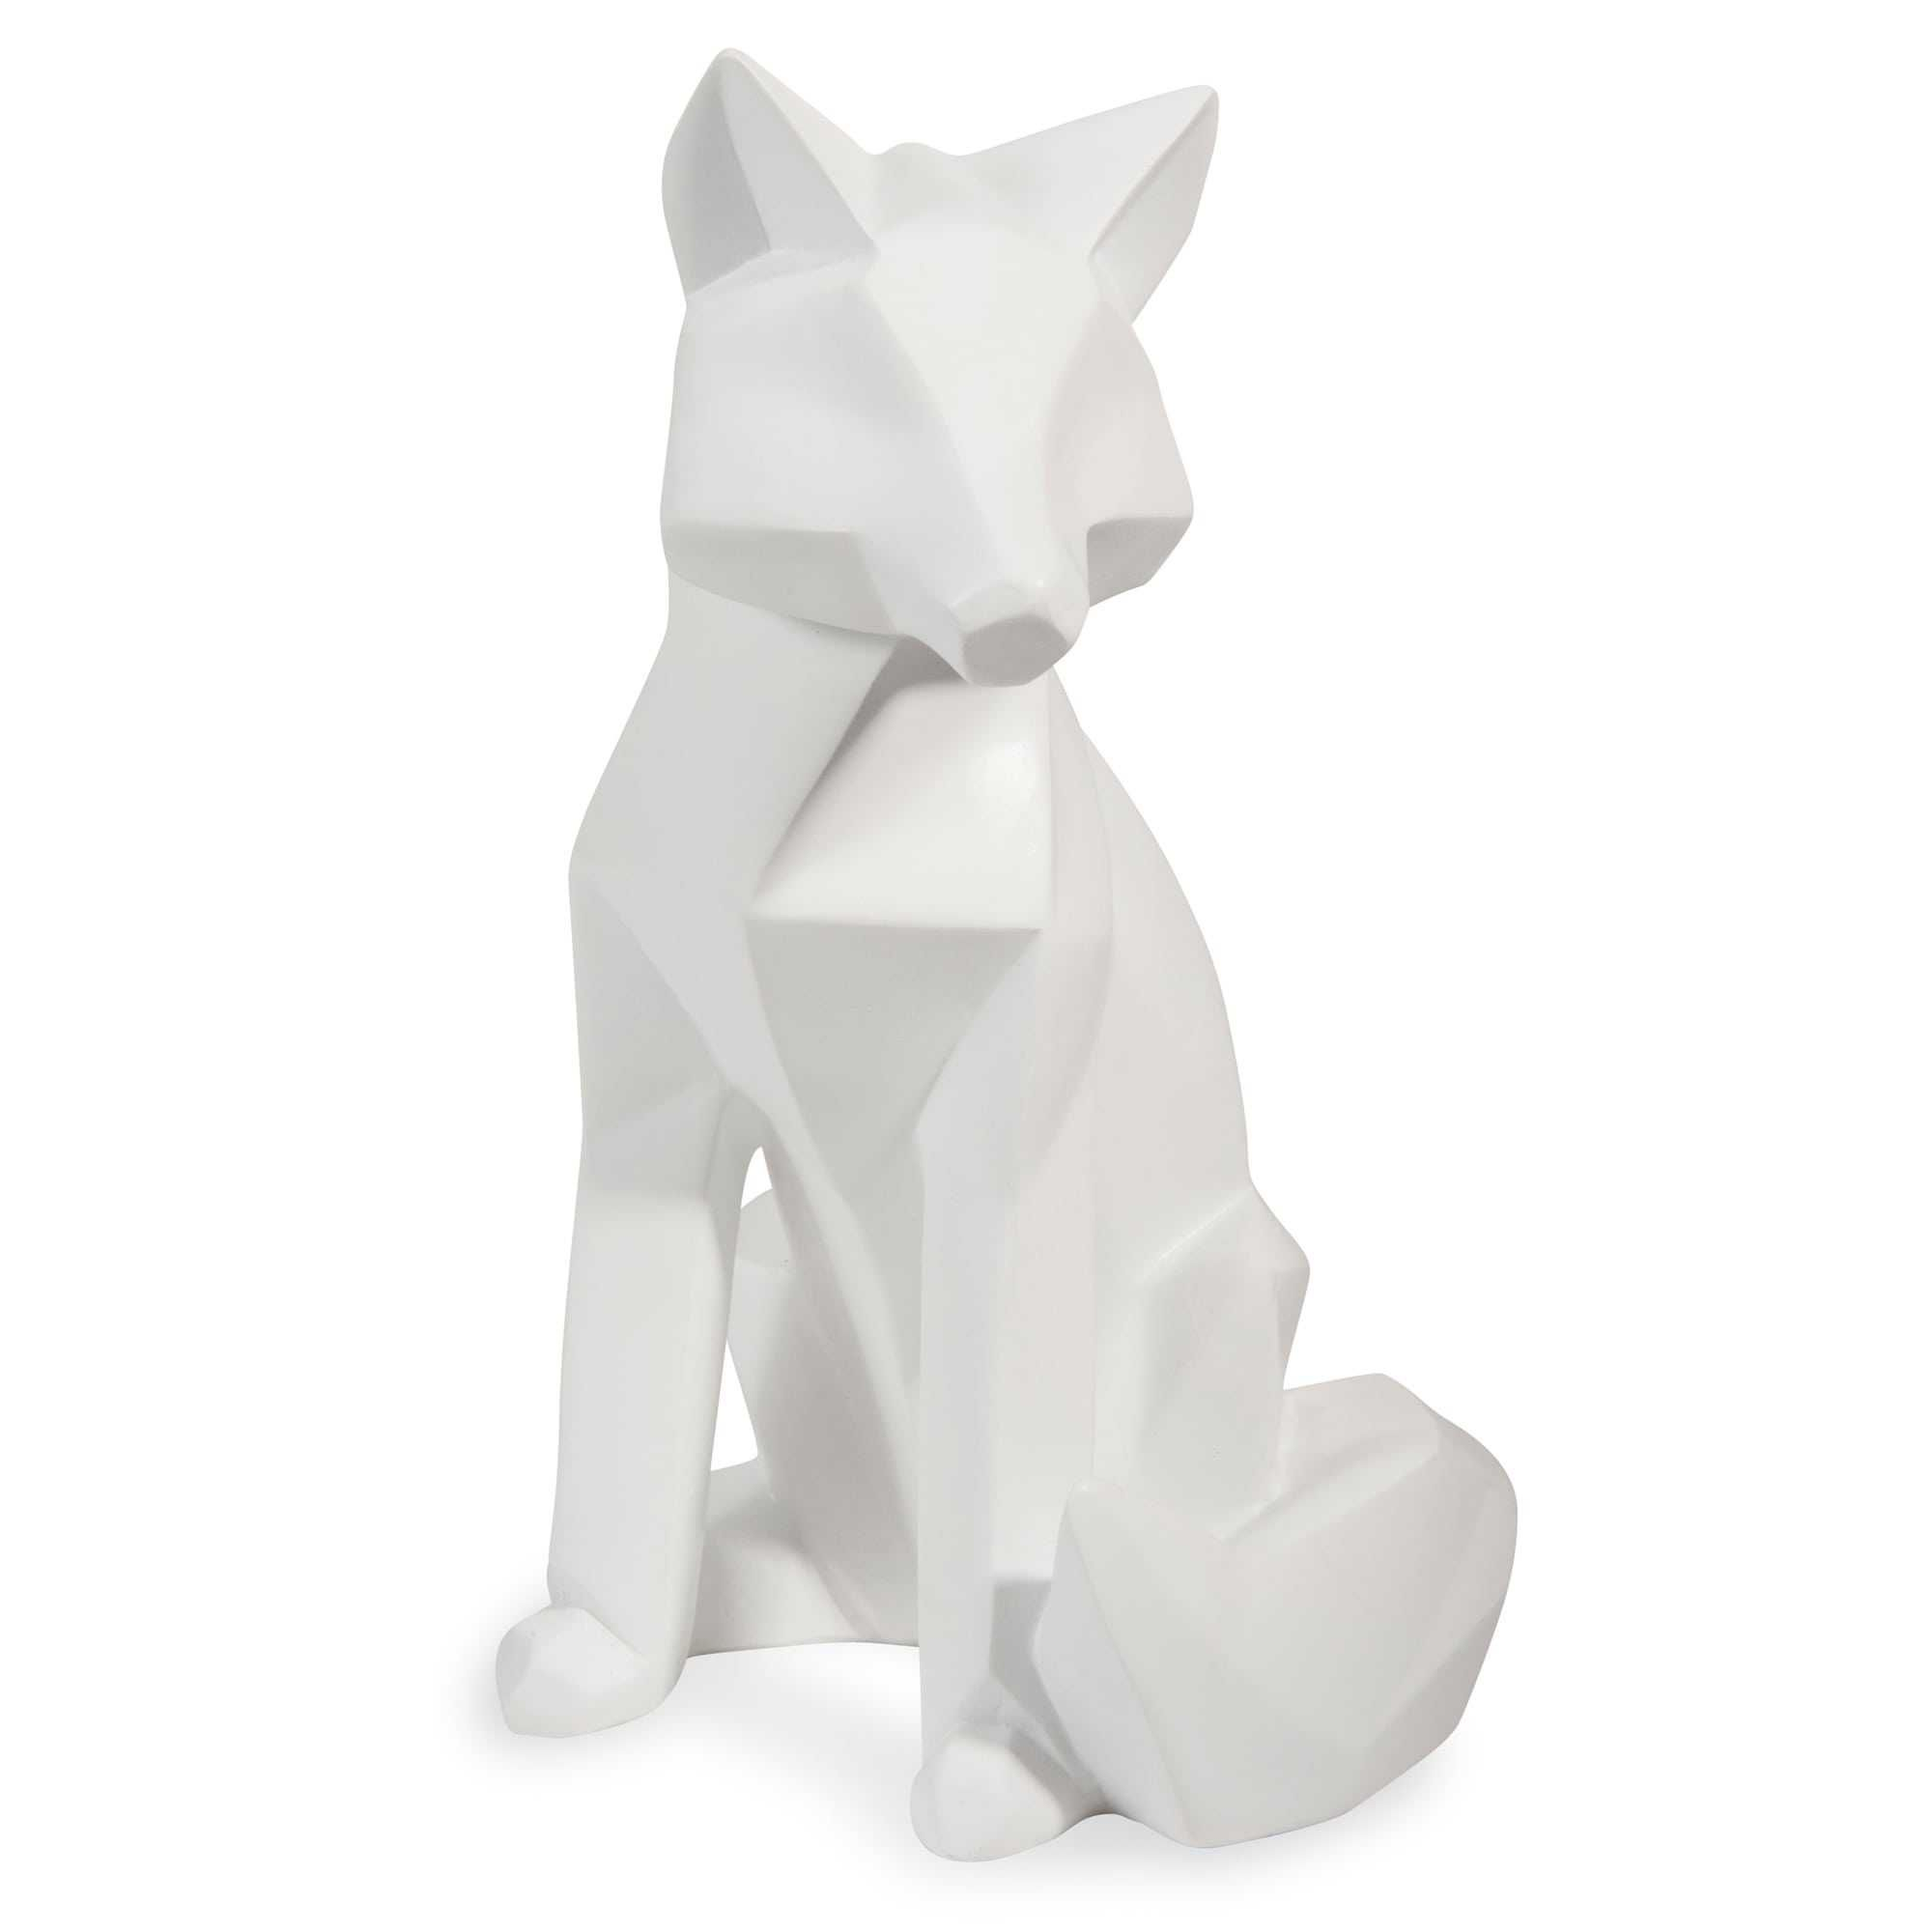 Statuette renard blanc h 26 cm origami and bedrooms for Kitchen colors with white cabinets with papier cadeau noel